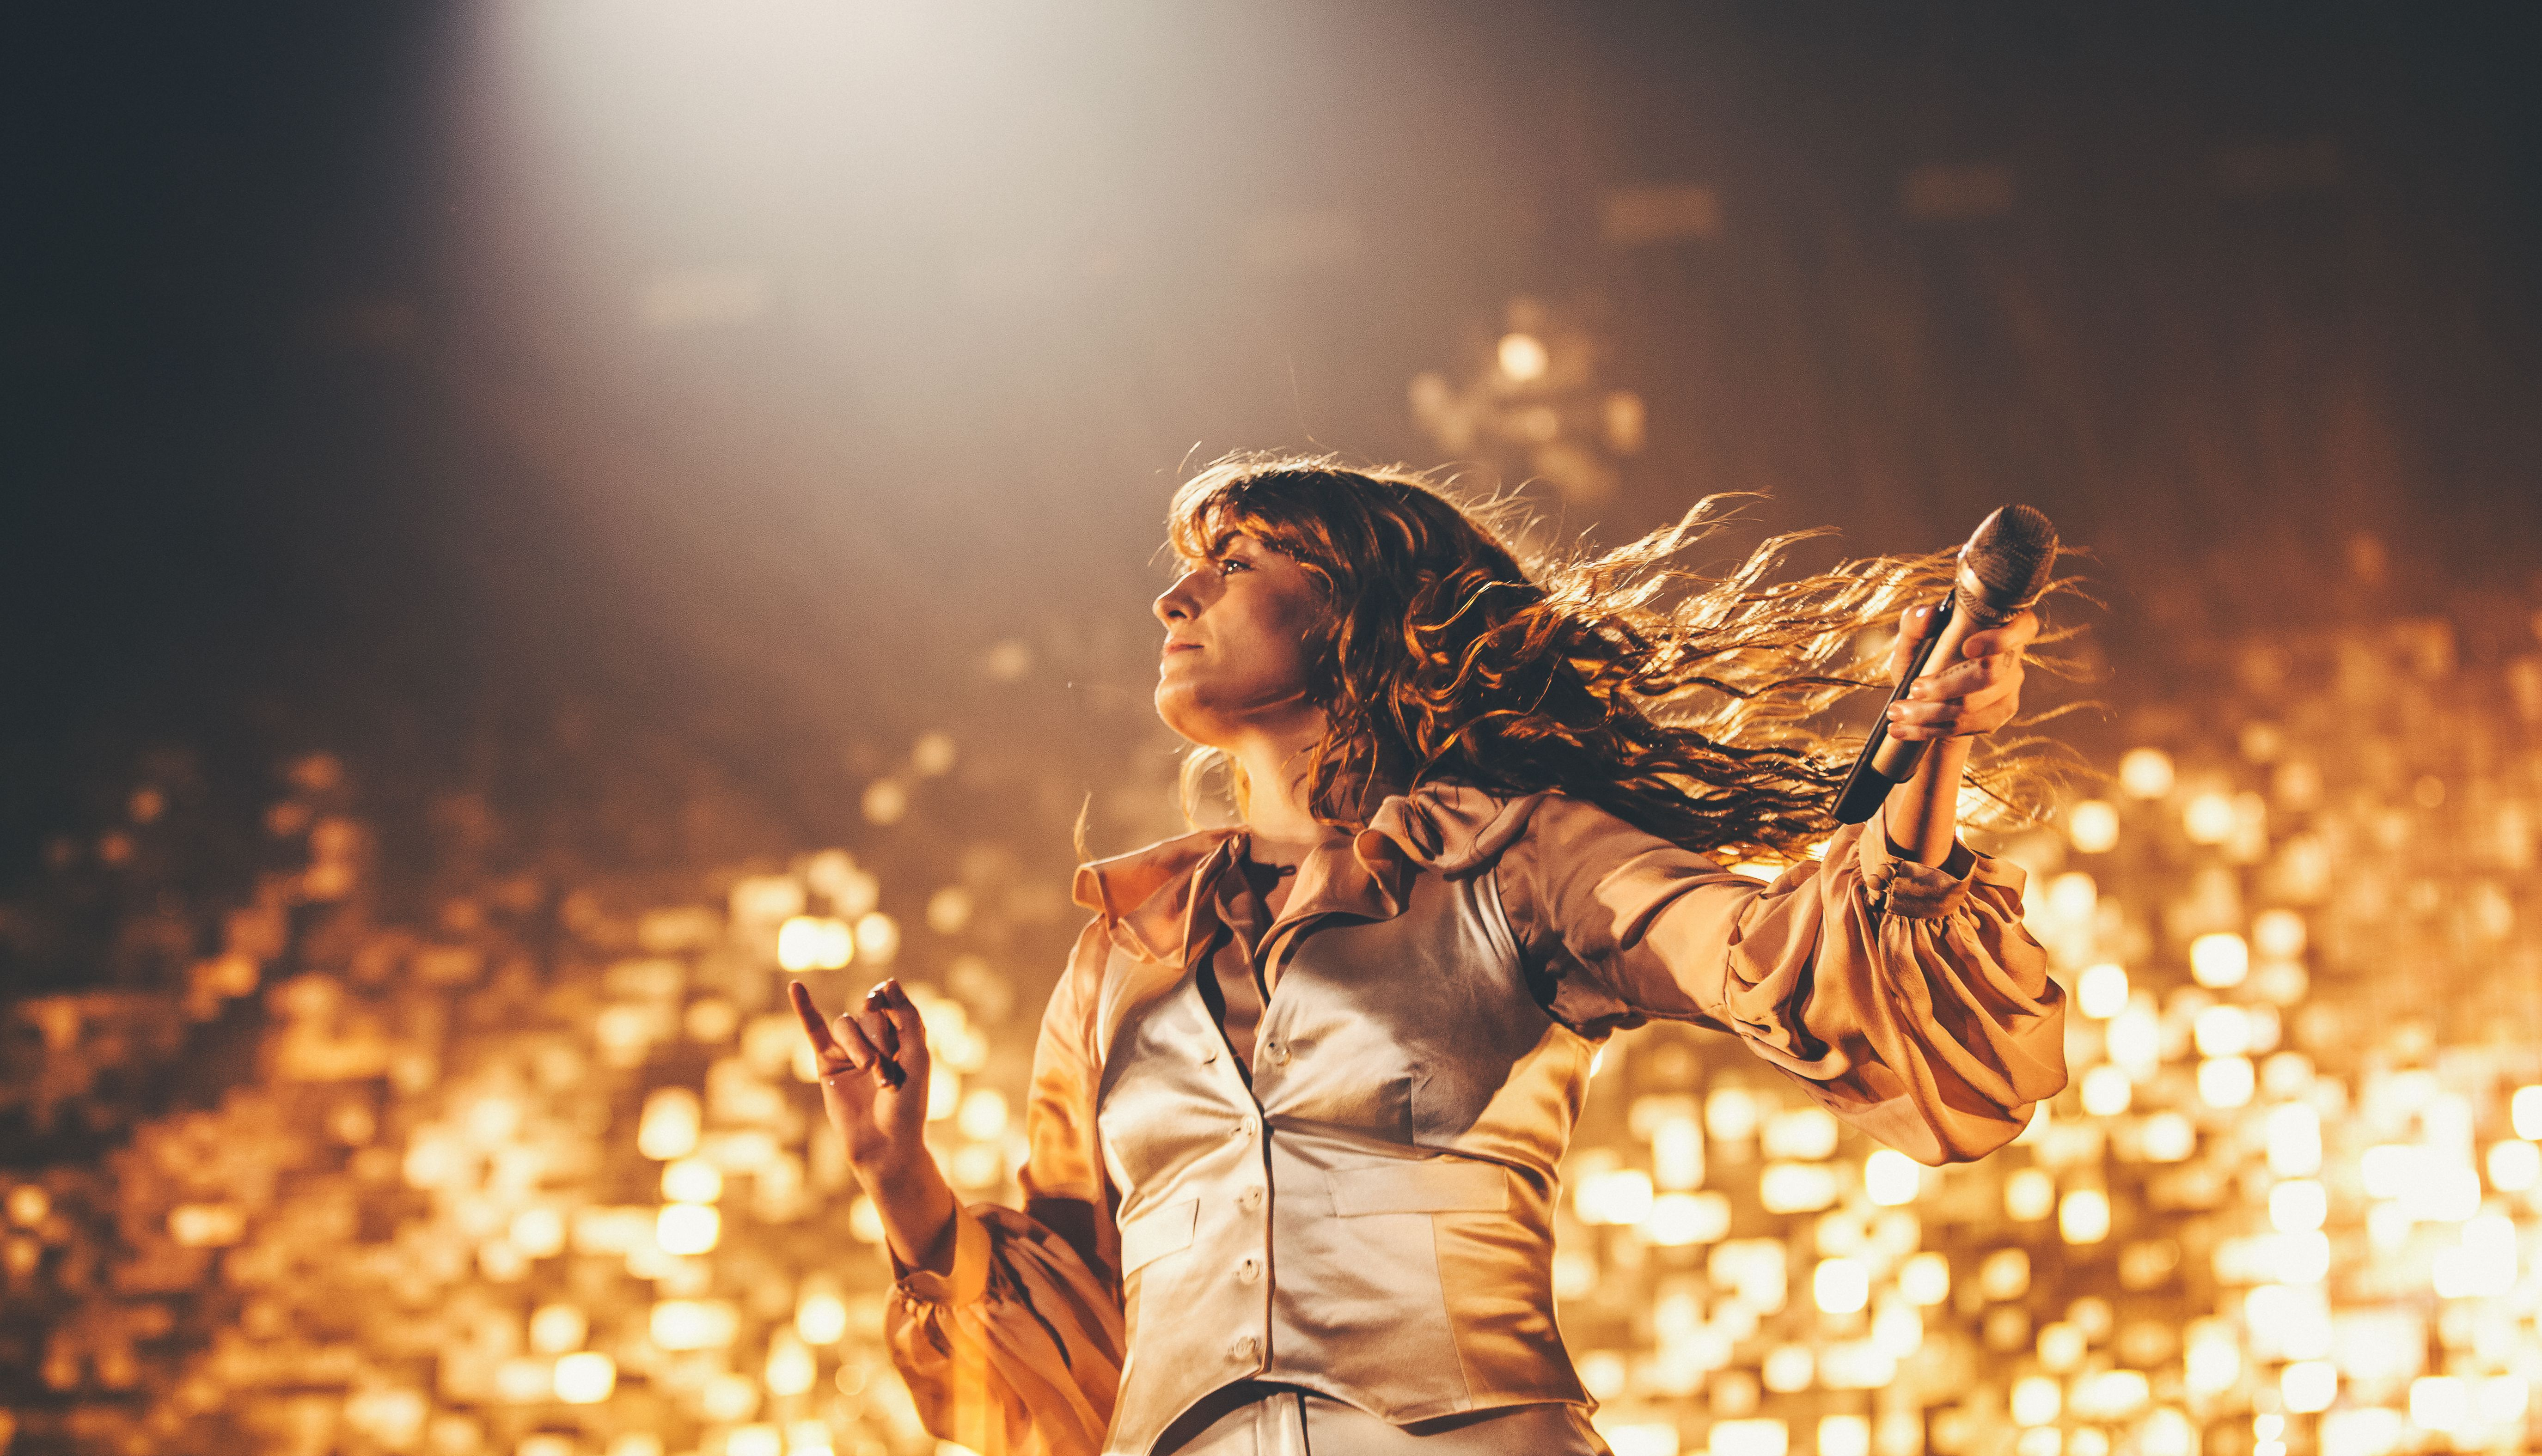 Florence And The Machine Wallpapers Backgrounds 5500x3151